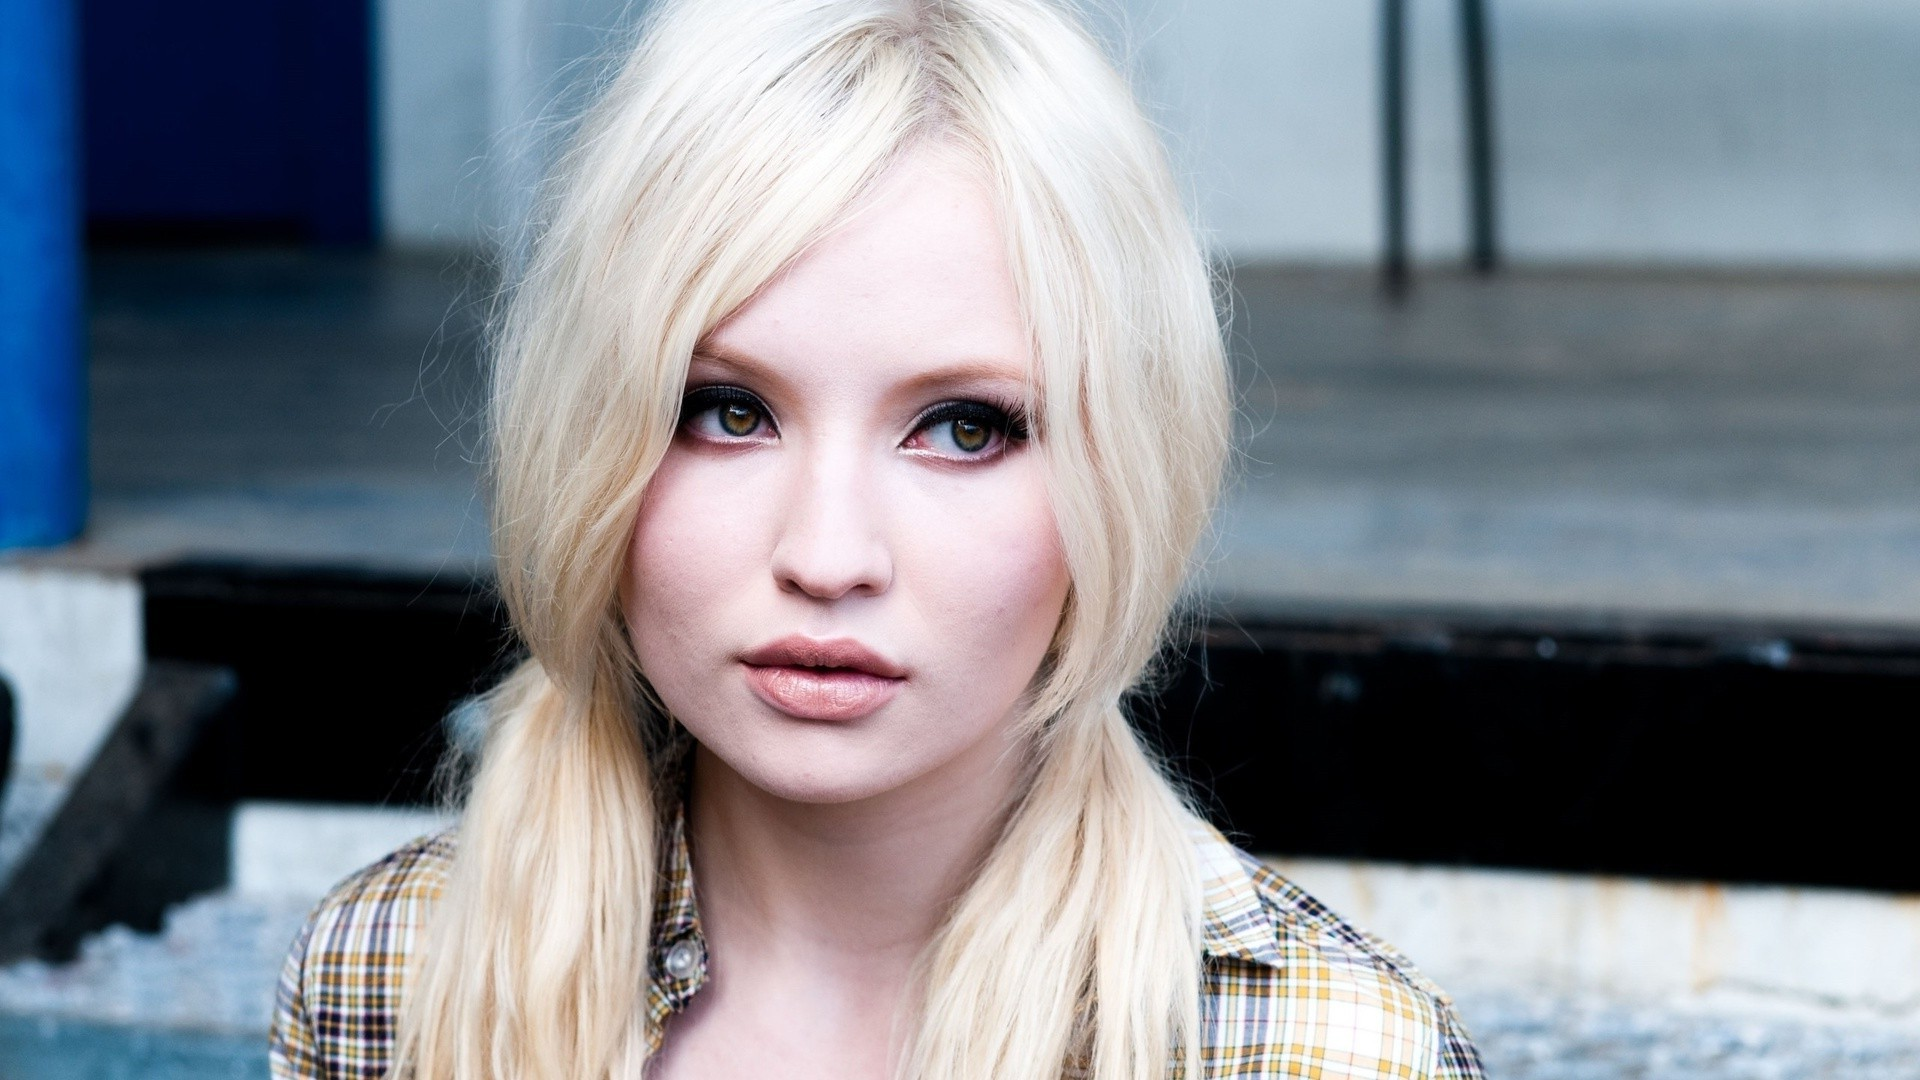 Background Wallpaper Baby Girl 14 Hd Emily Browning Wallpapers